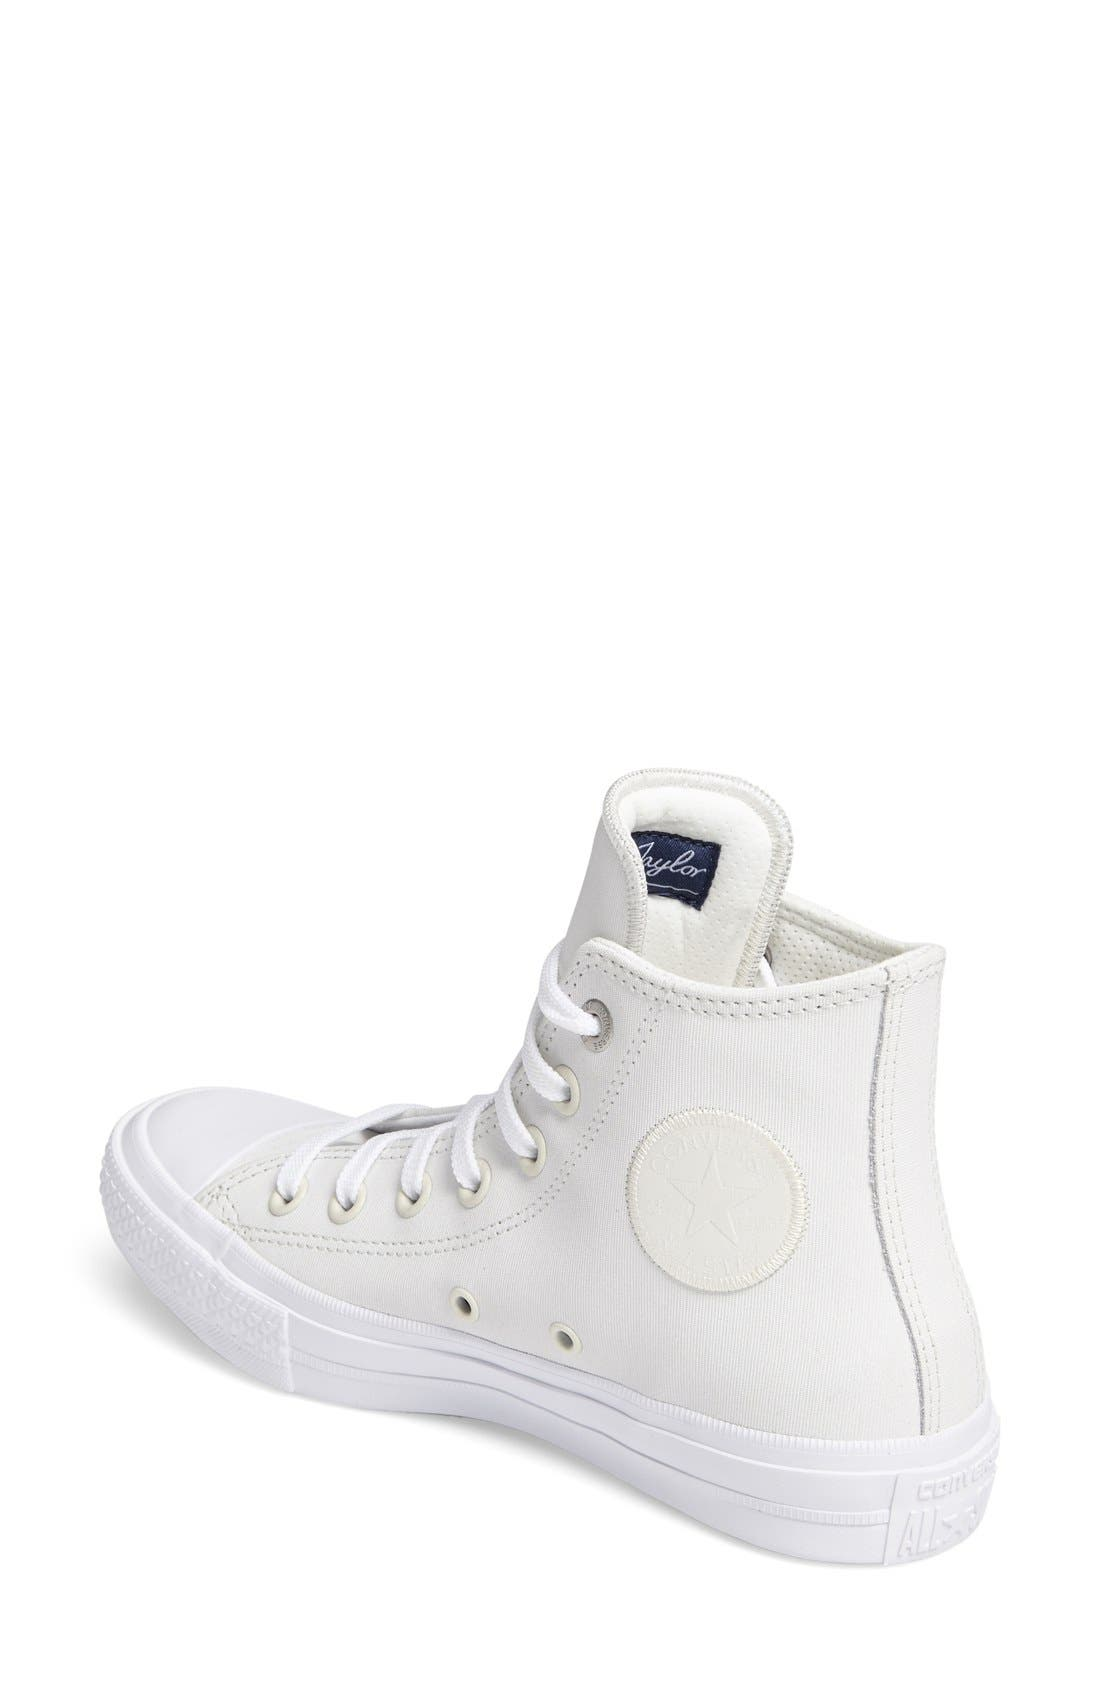 Alternate Image 2  - Converse Chuck Taylor® All Star® II Two Tone High Top Sneaker (Women)